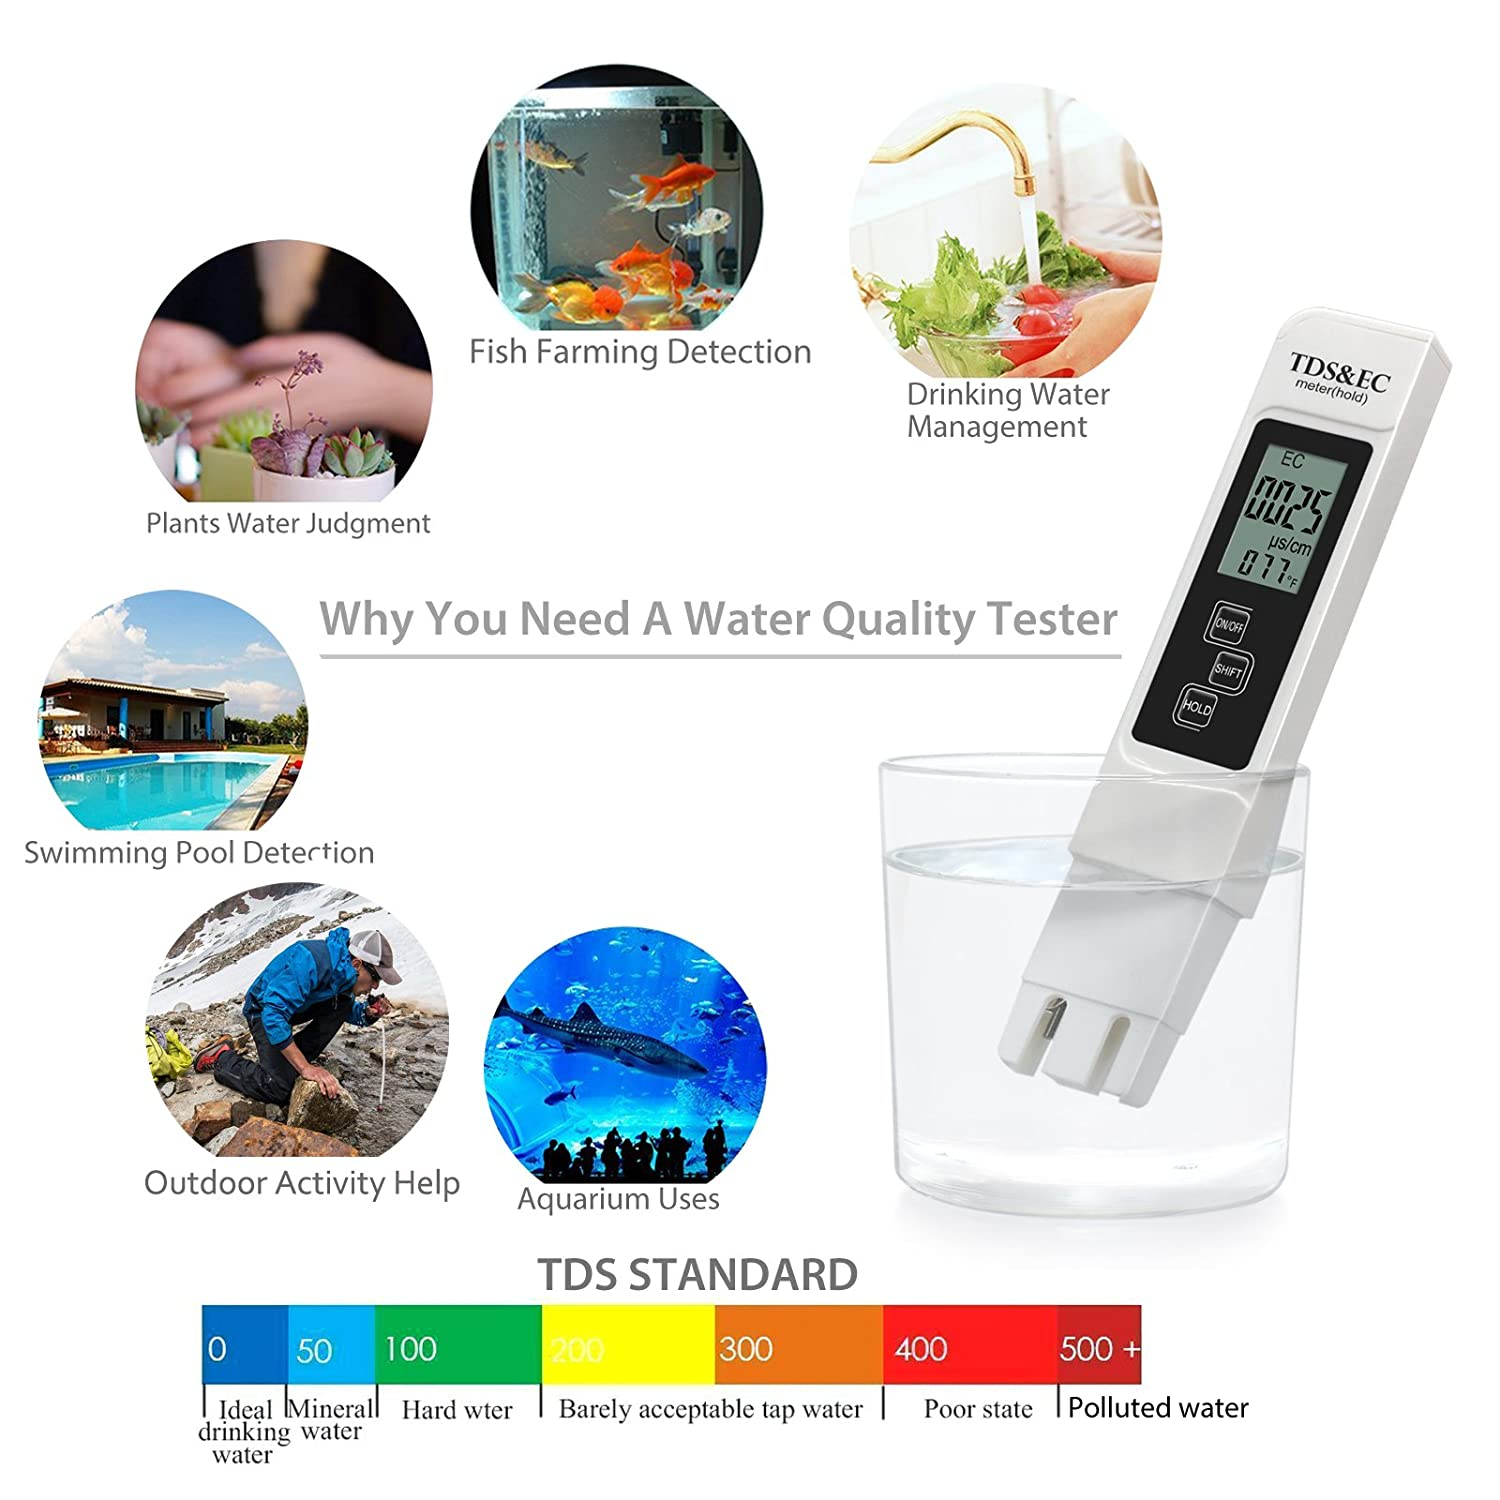 Digital Water Quality Tester Digital TDS EC Meter with Battery Range at 0-9990 Multifunctional Water Purity Temperature Meter with Leather Bag TEMP PPM Test for Drinking Water Drink Quality Monitoring Swimming Pools Spas Aquarium Hydroponics Water Purifier